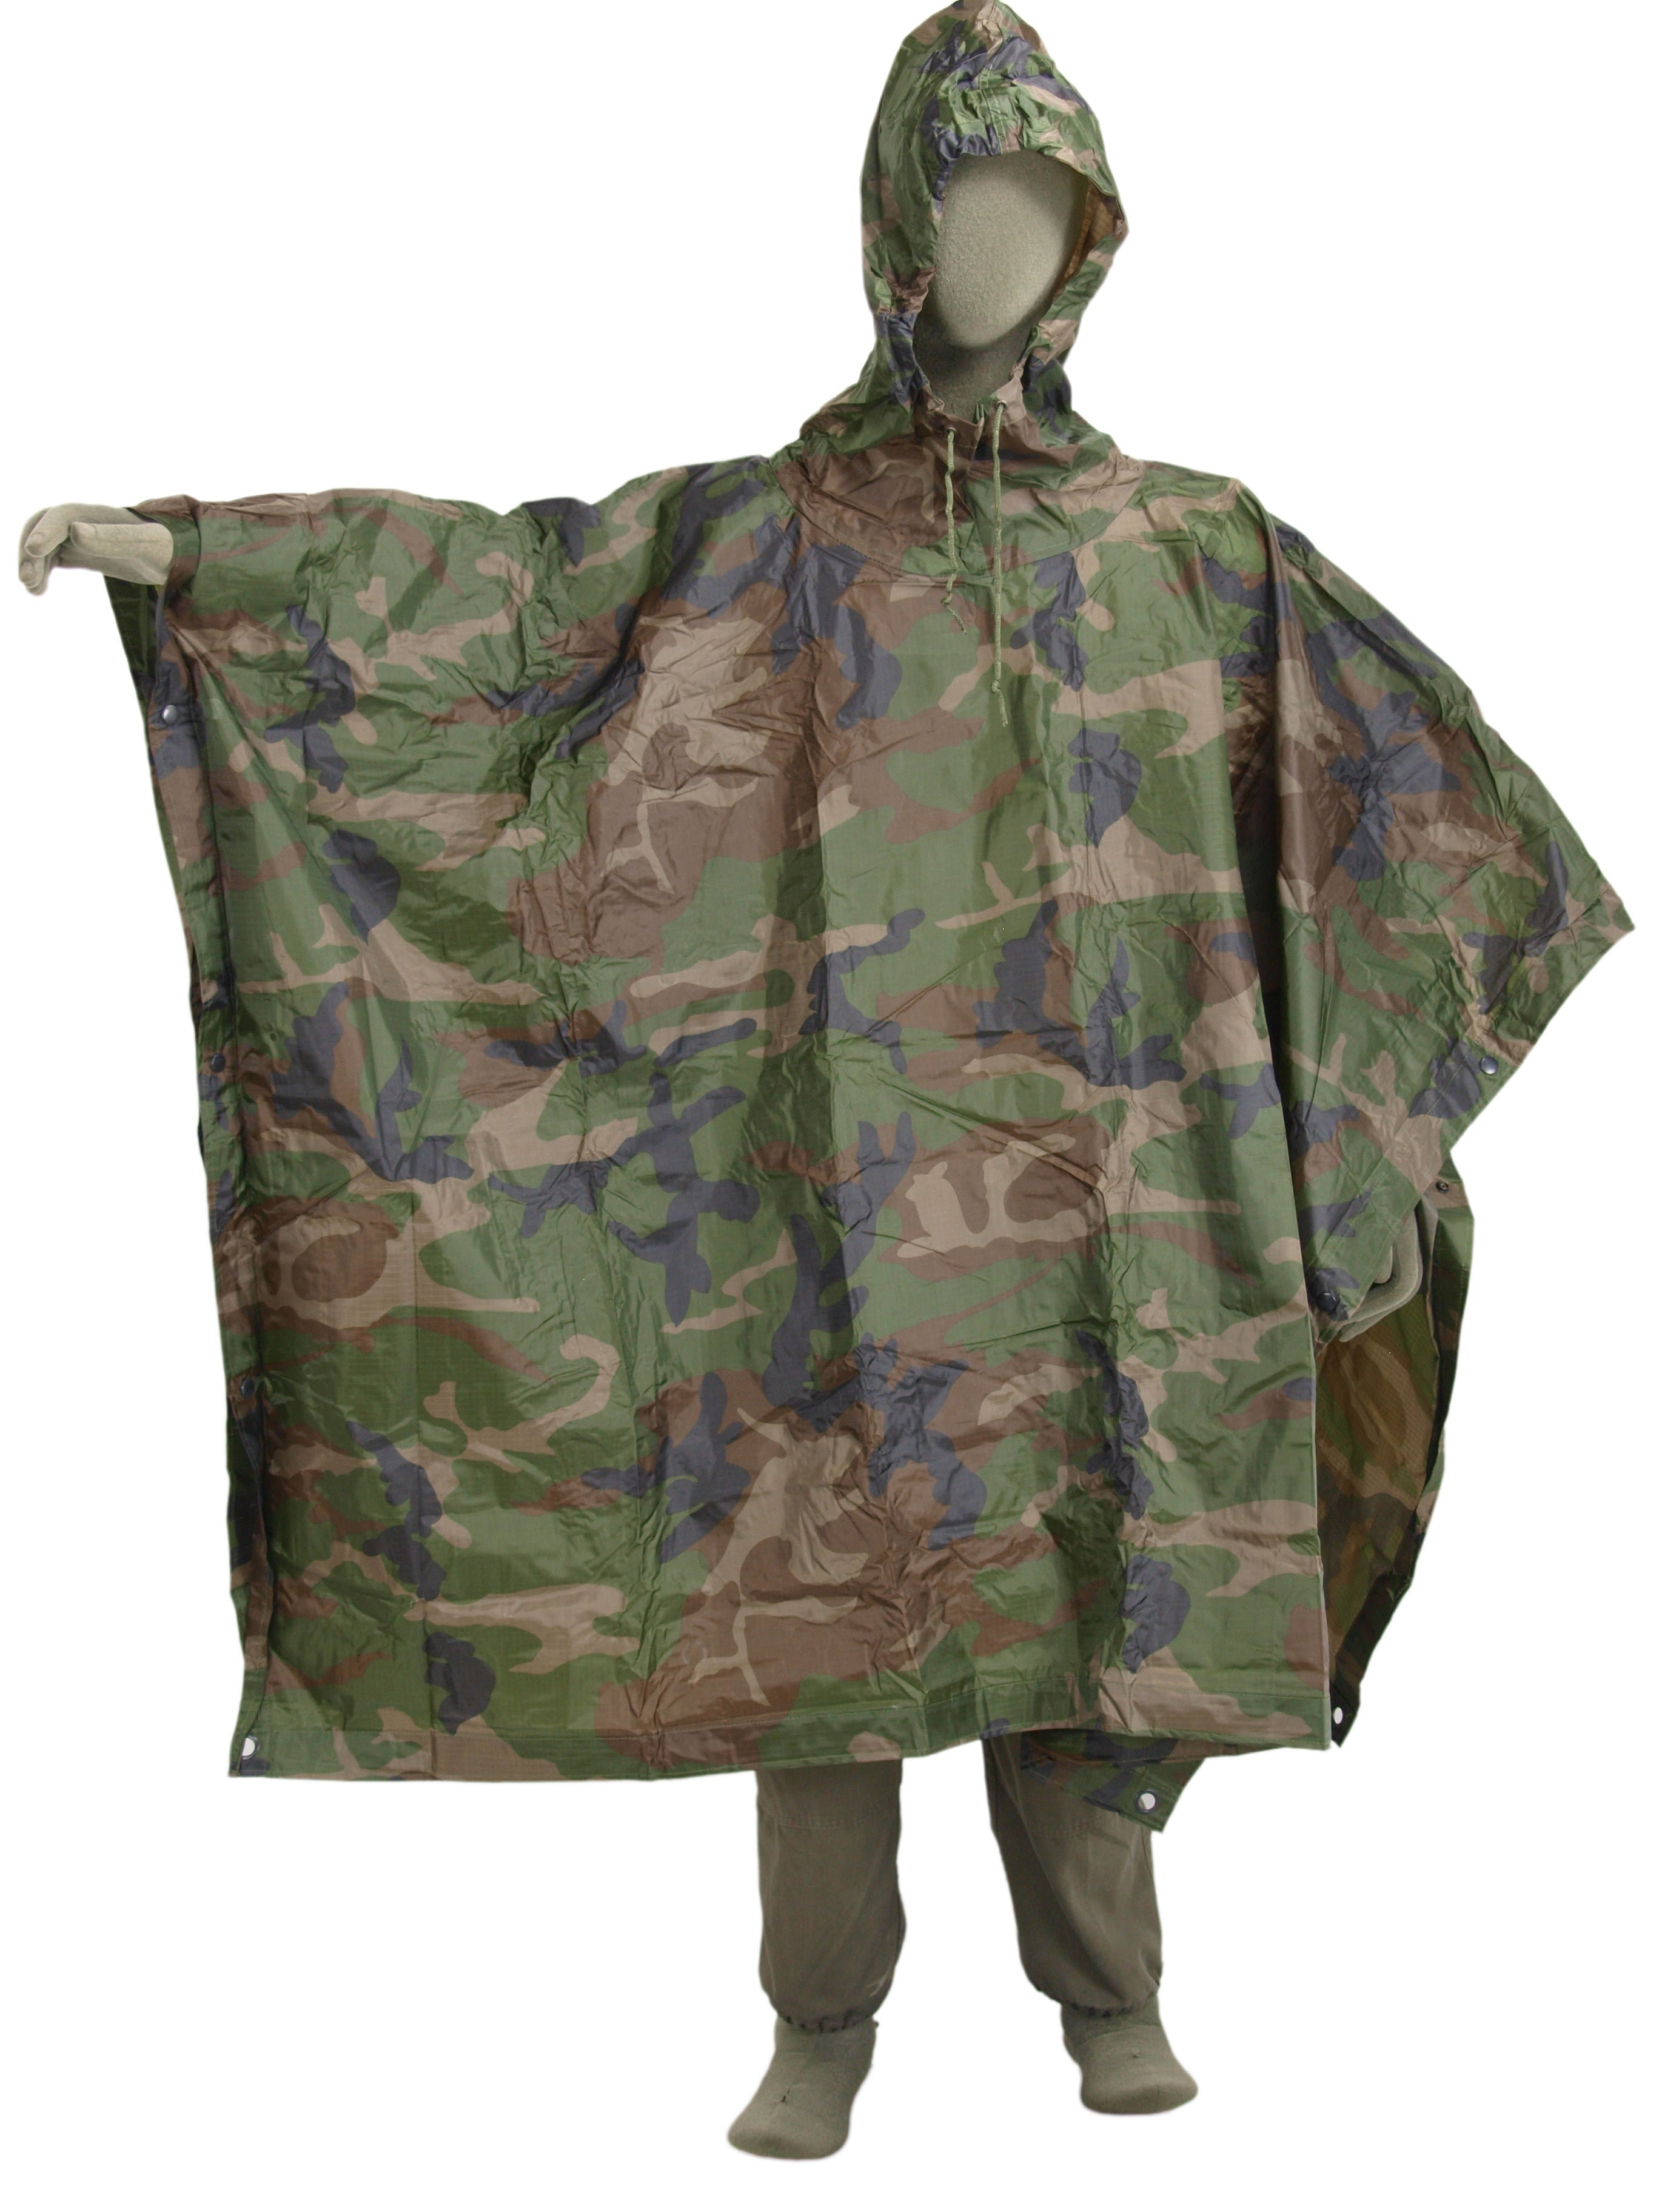 Foreign Legion African Jungle poncho - New in bag